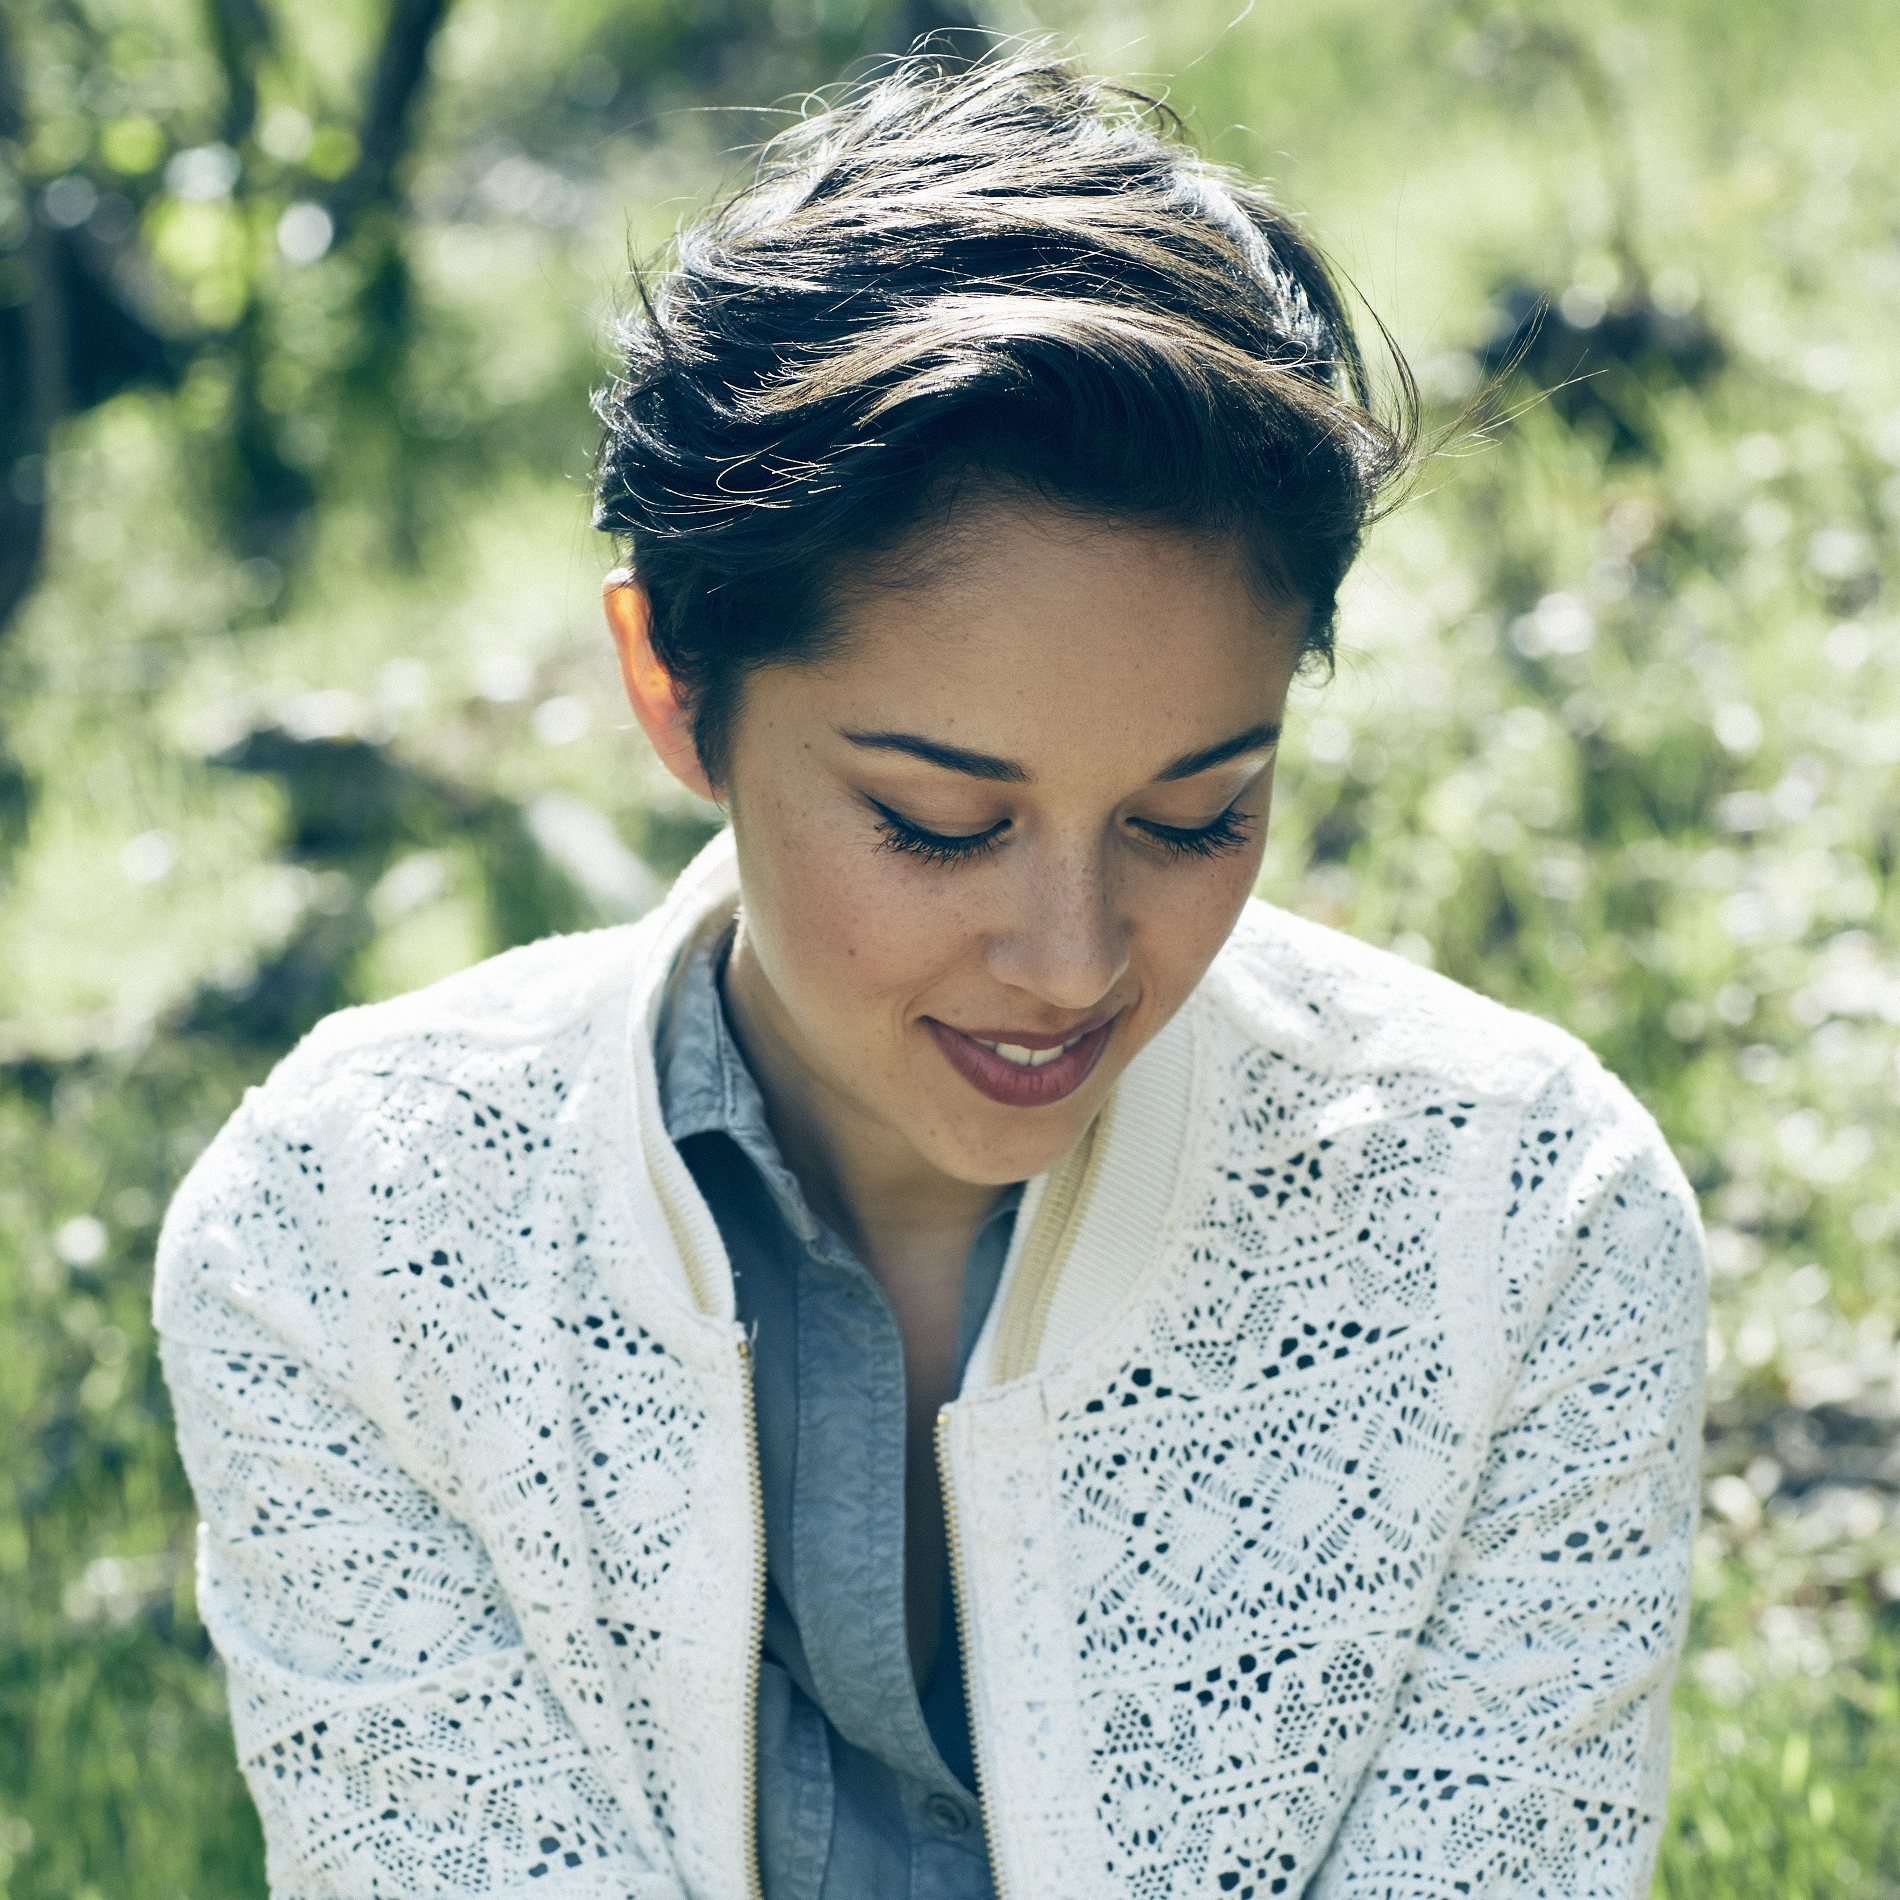 New Music By Kina Grannis Nycrophone